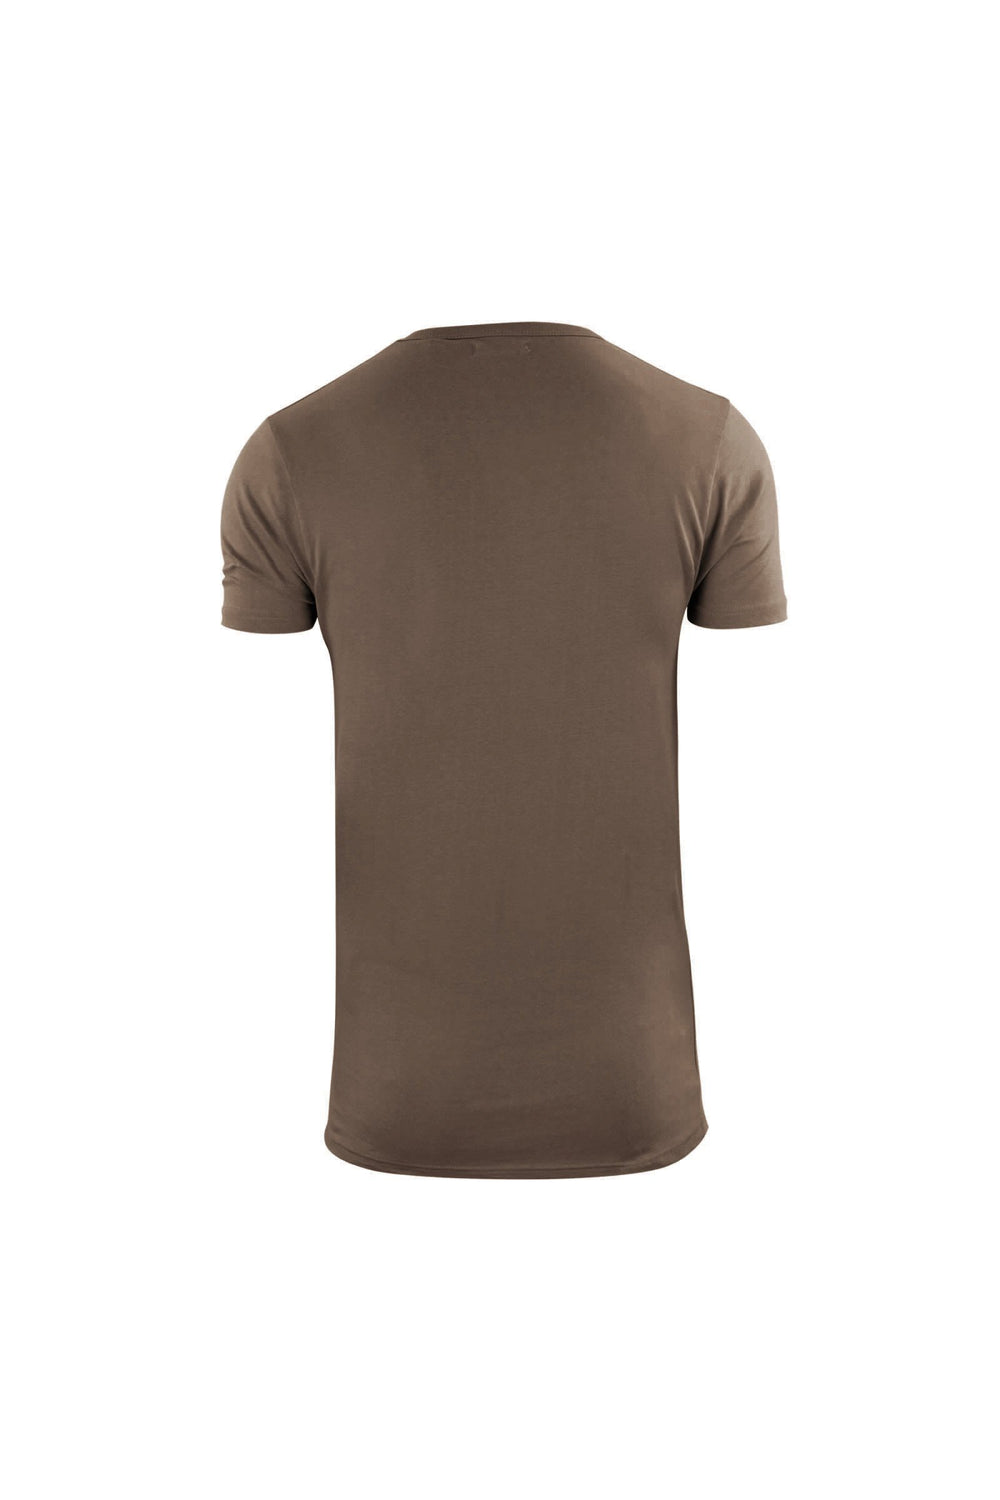 T-Shirts - Longline Zip T-Shirt Military Brown